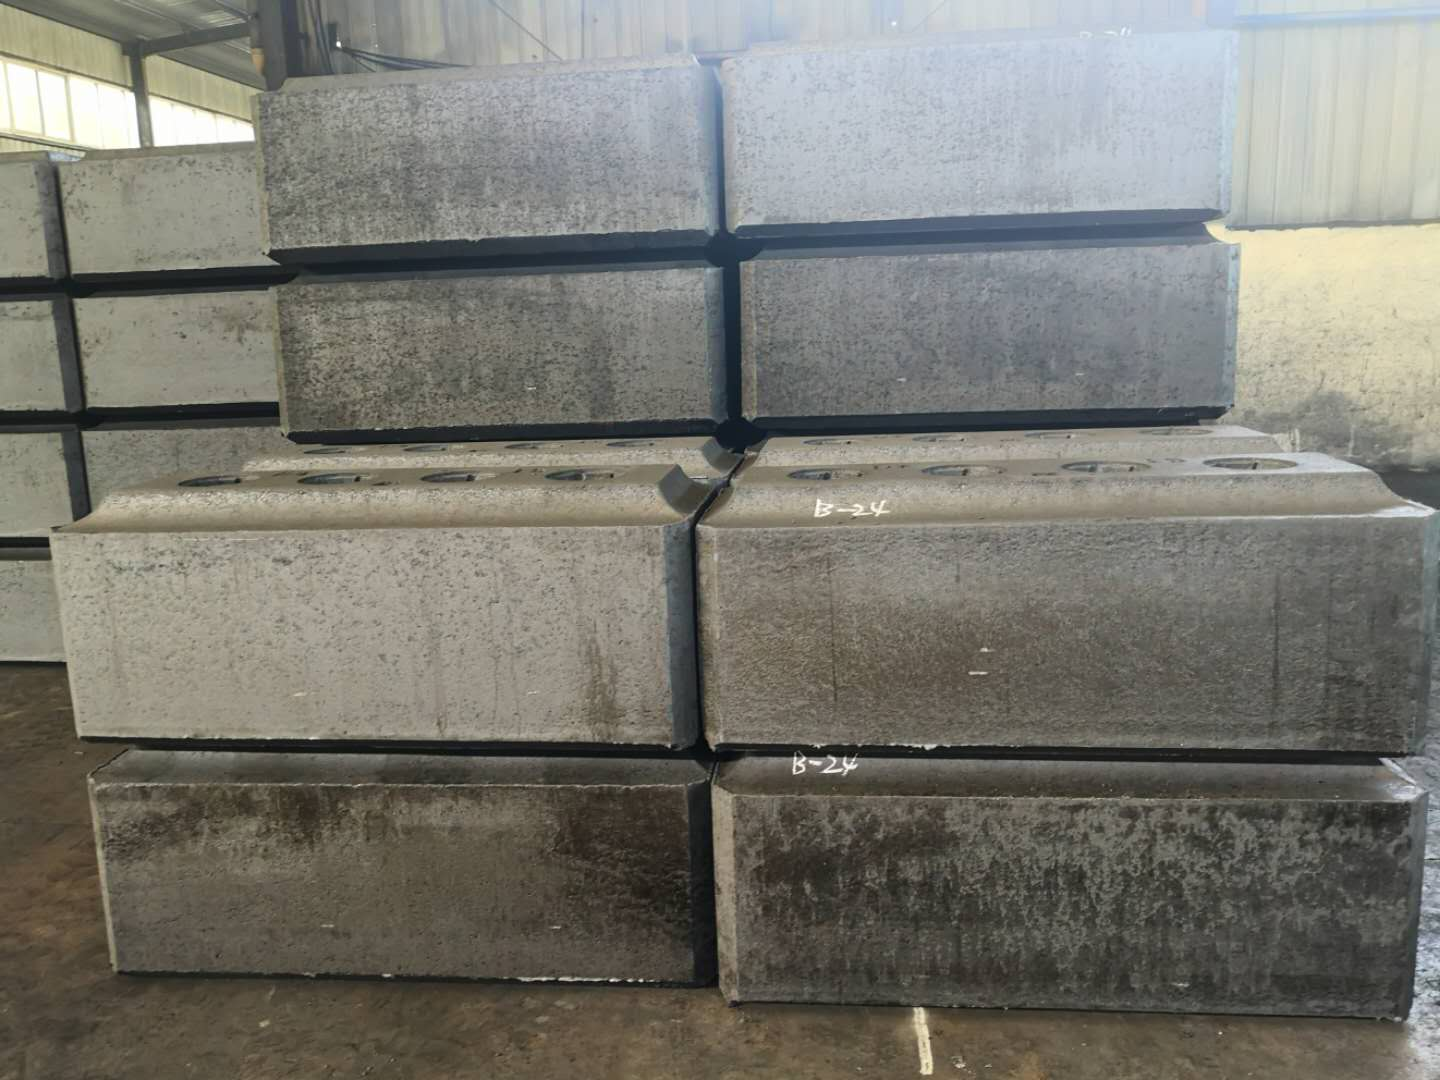 Carbon Anode Manufacturer used for electrolysis processing in Aluminum Smelter Plant